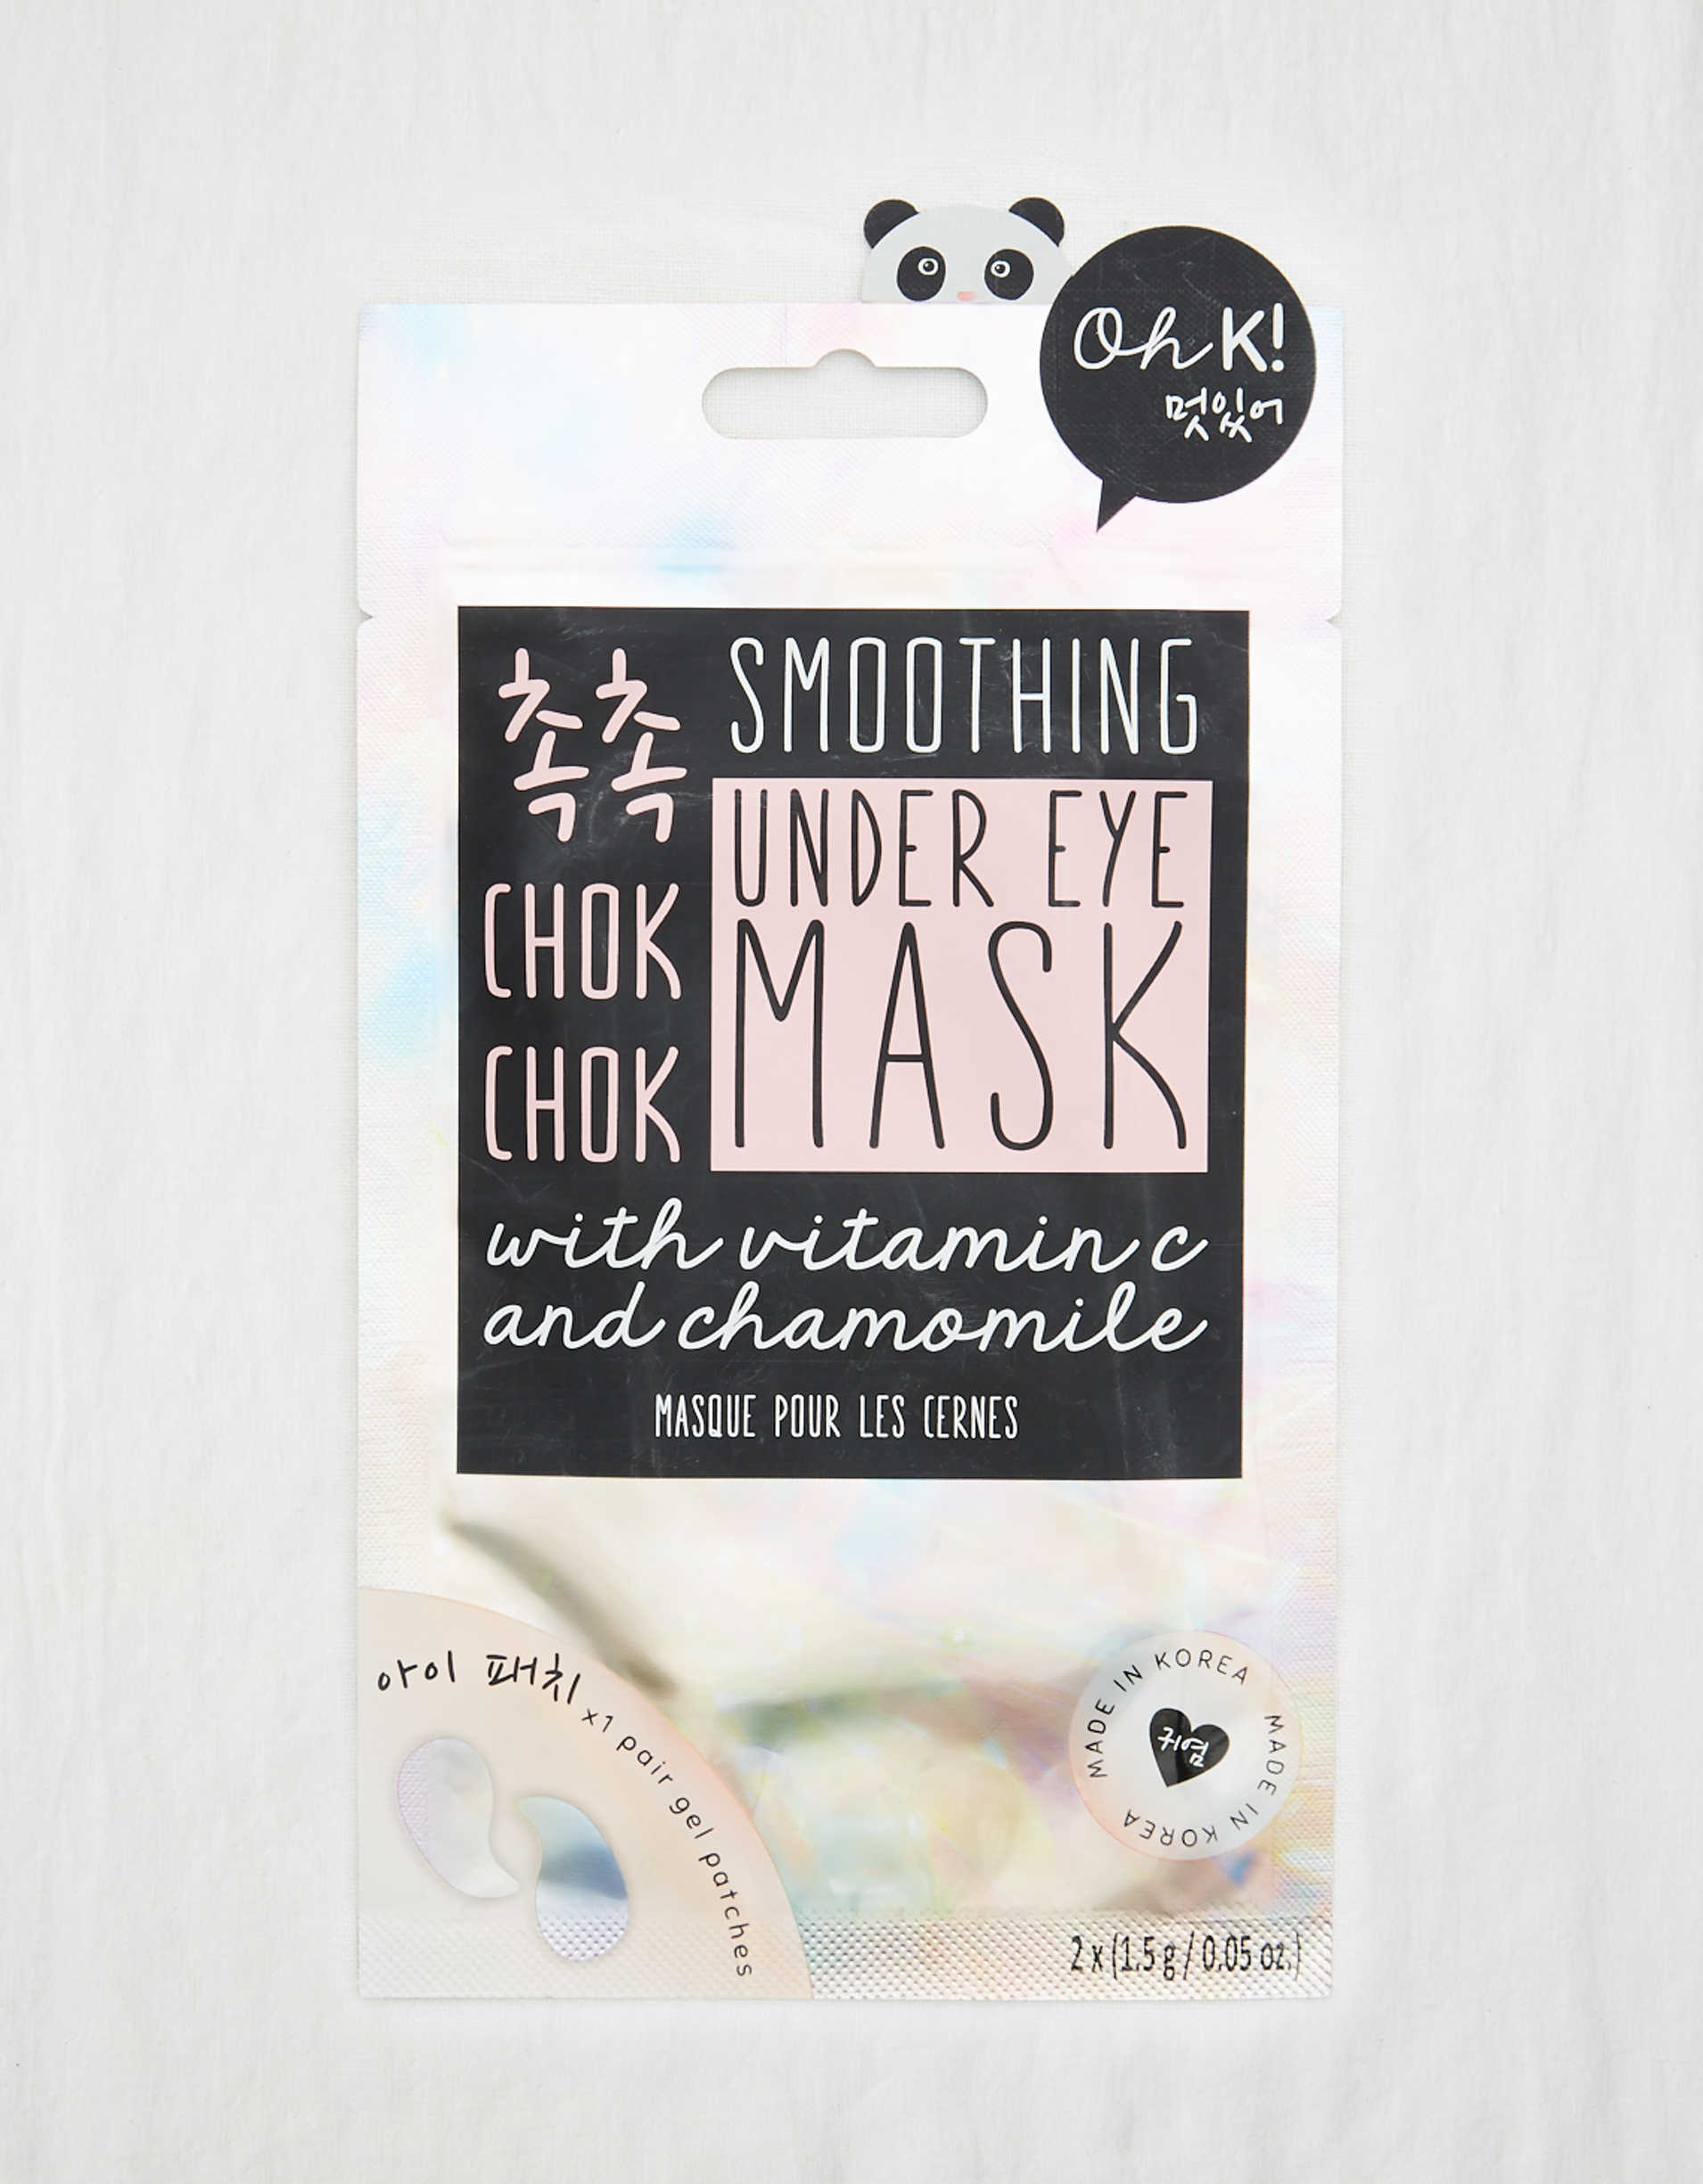 Oh K! Chok Chok Soothing Under Eye Mask